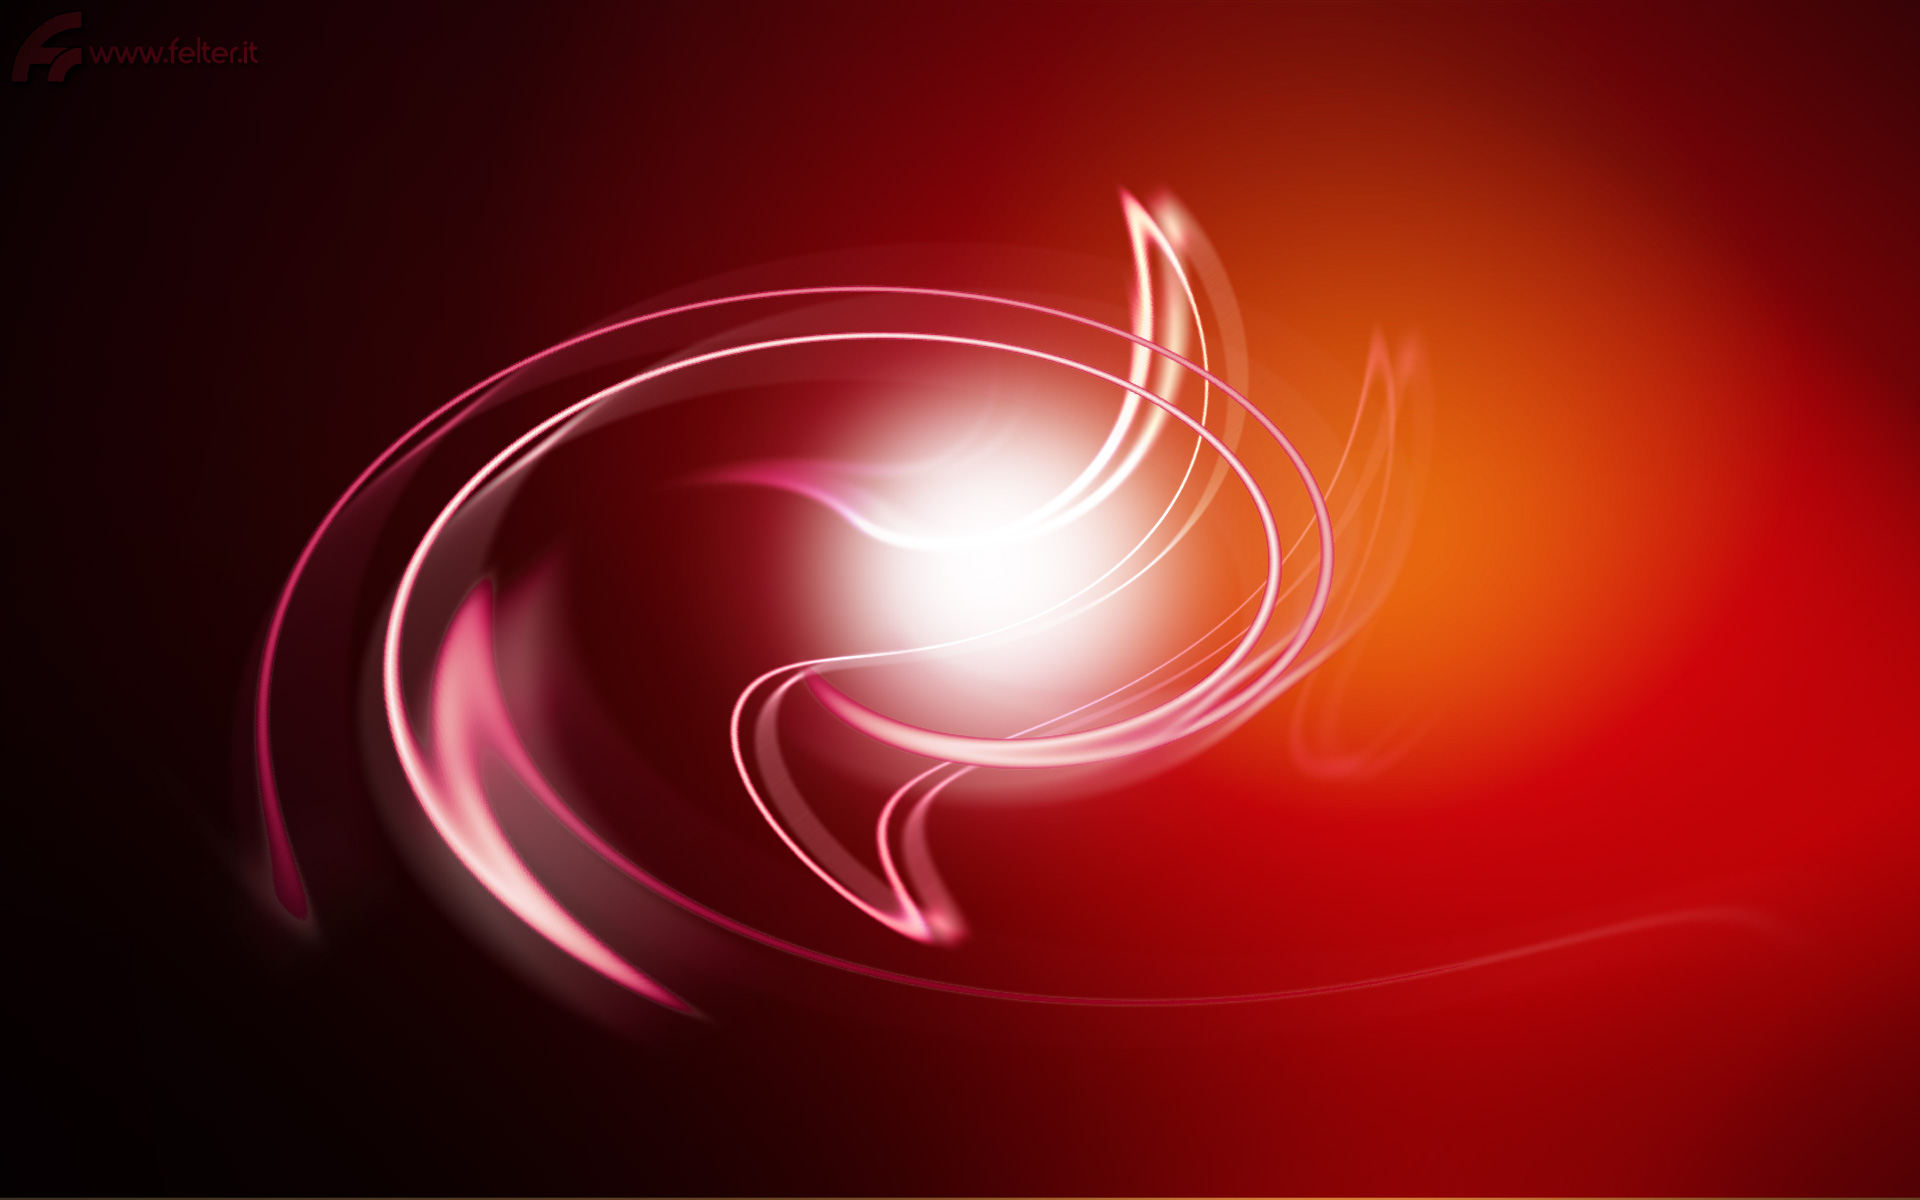 White Light Art Red Color HD Wallpaper Background Image